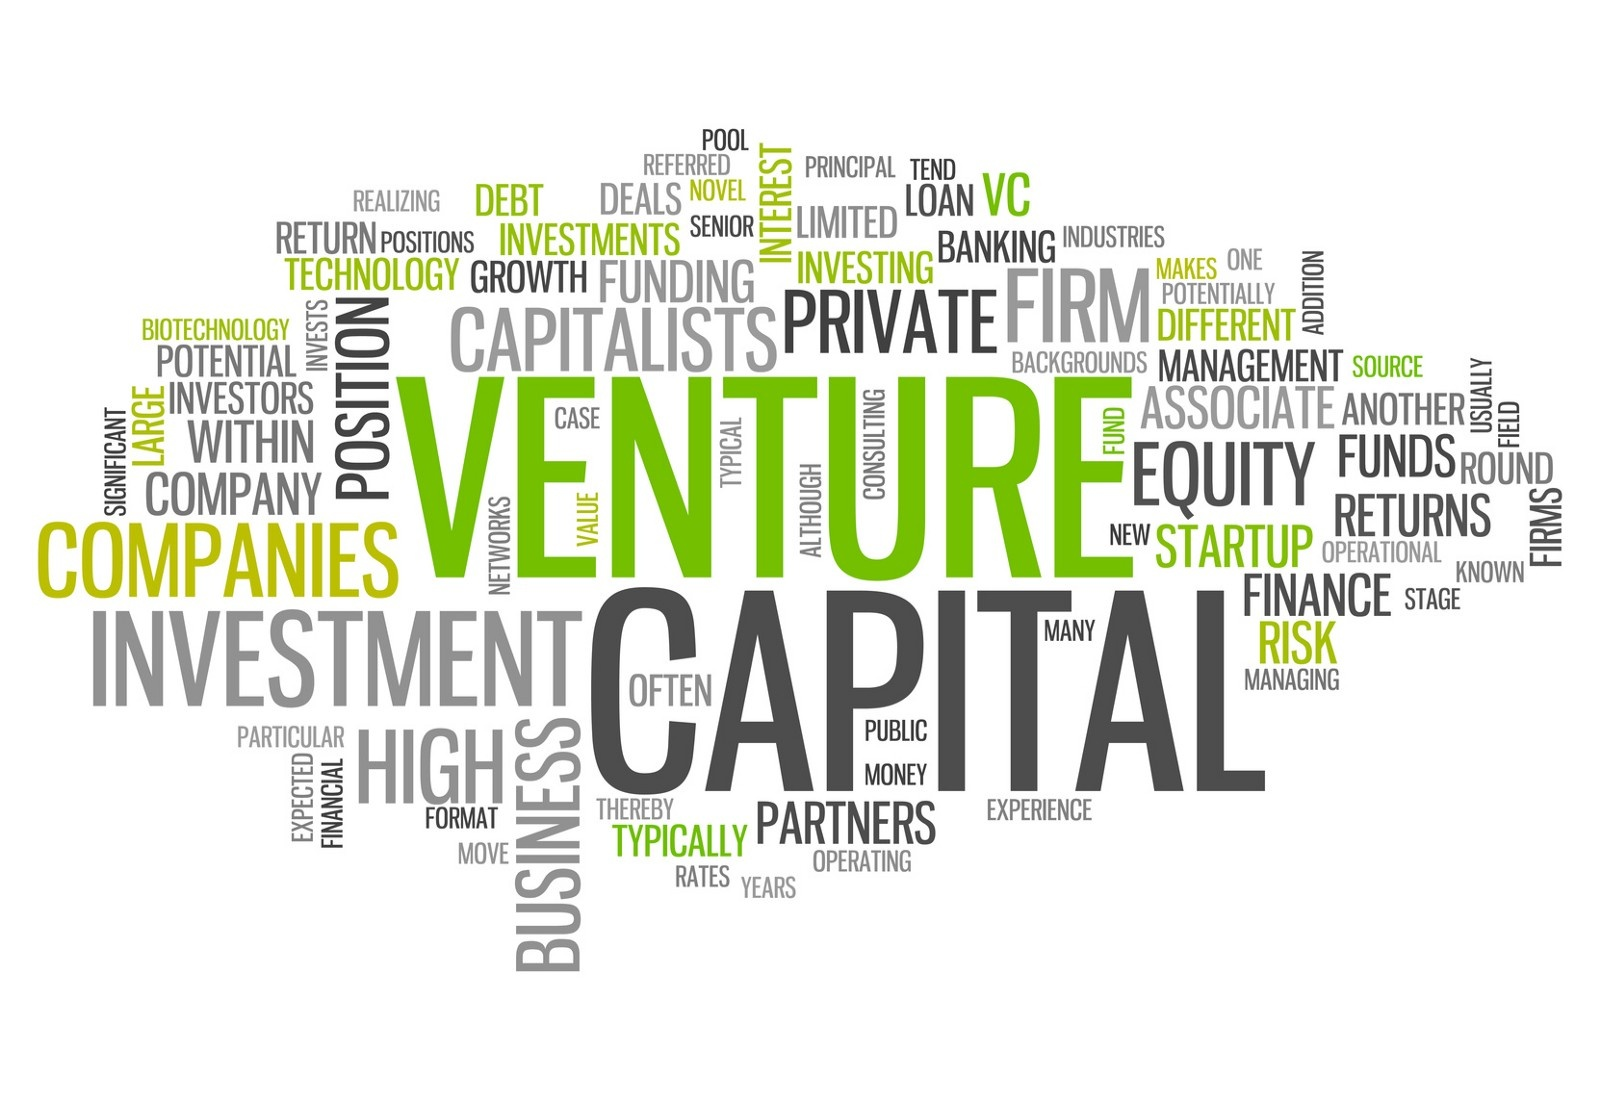 How does funding for startups work? - Quora